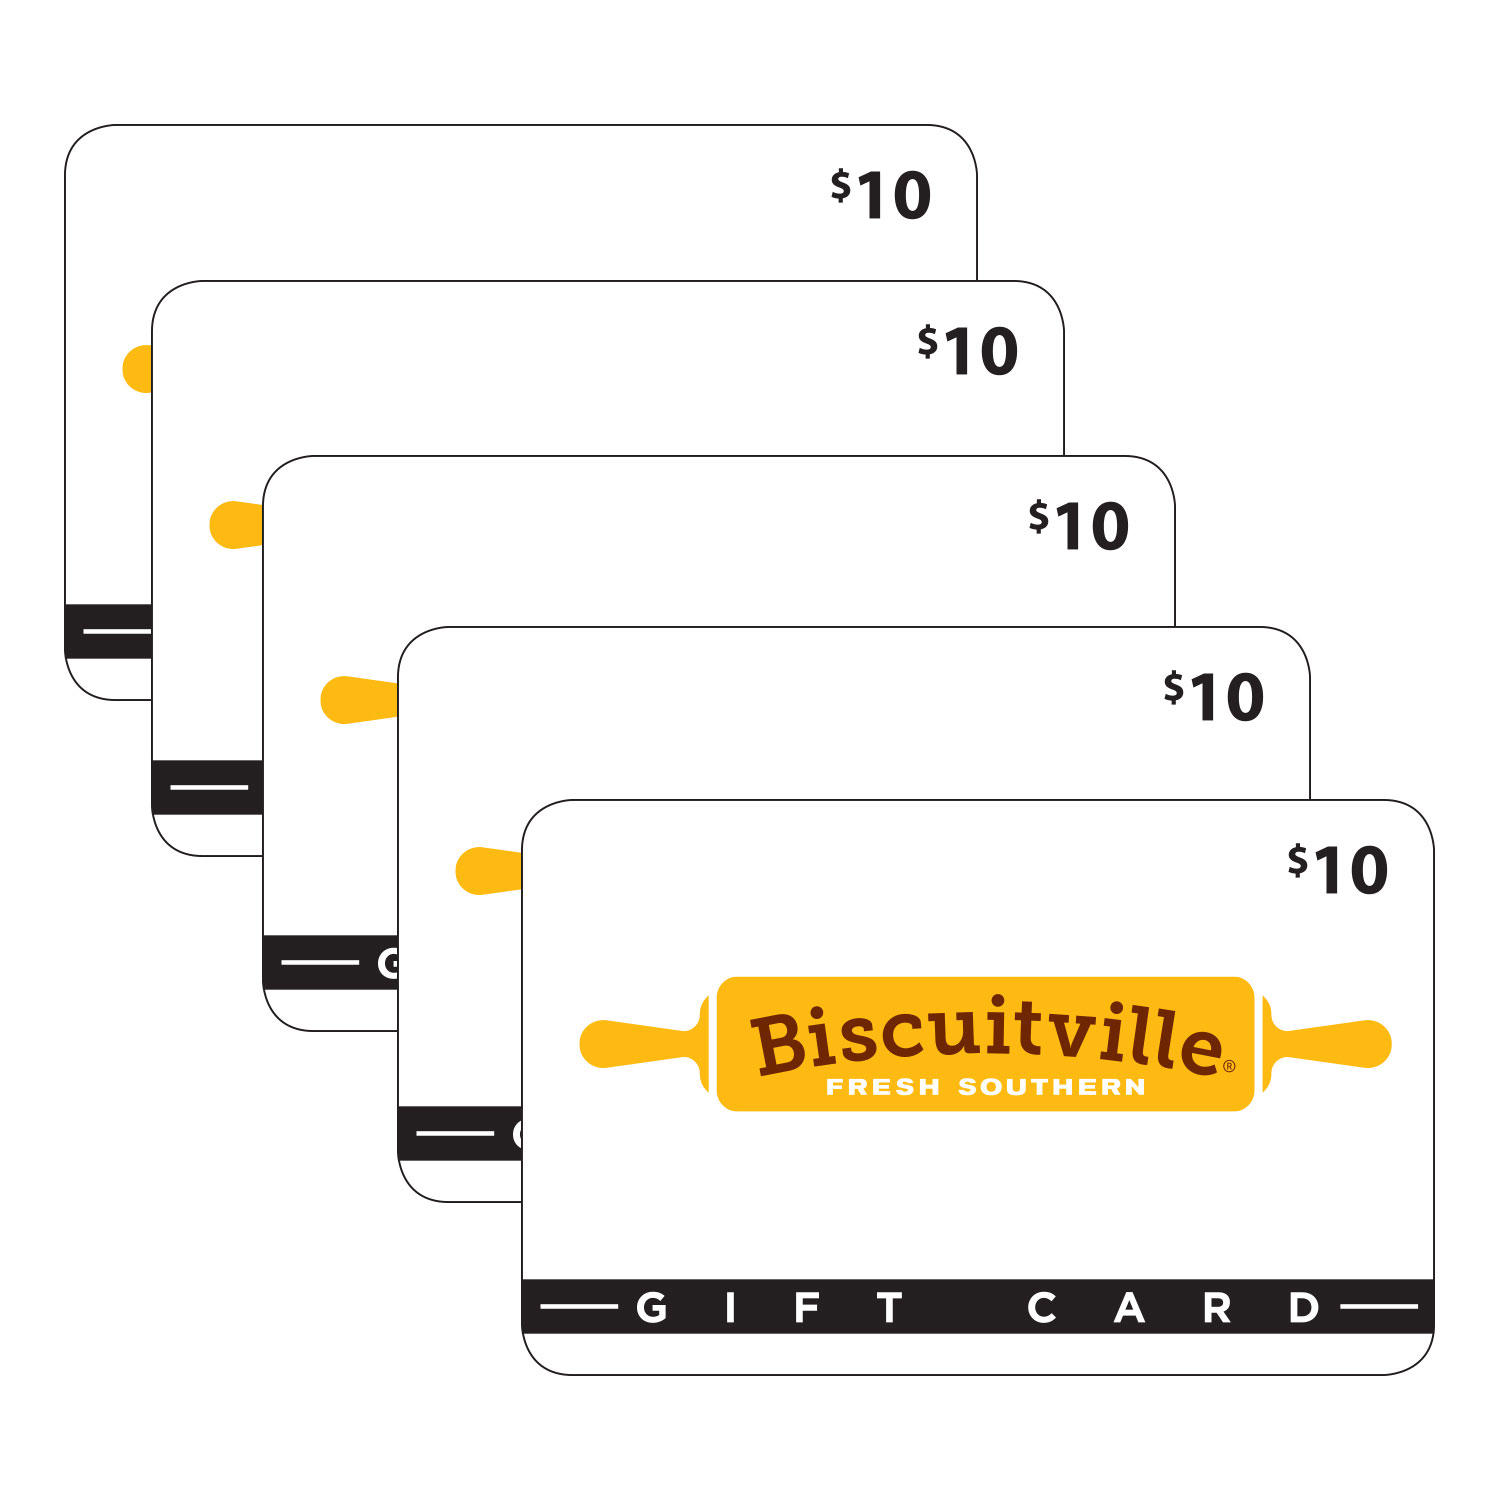 $50 (5 x $10) Biscuitville Gift Cards